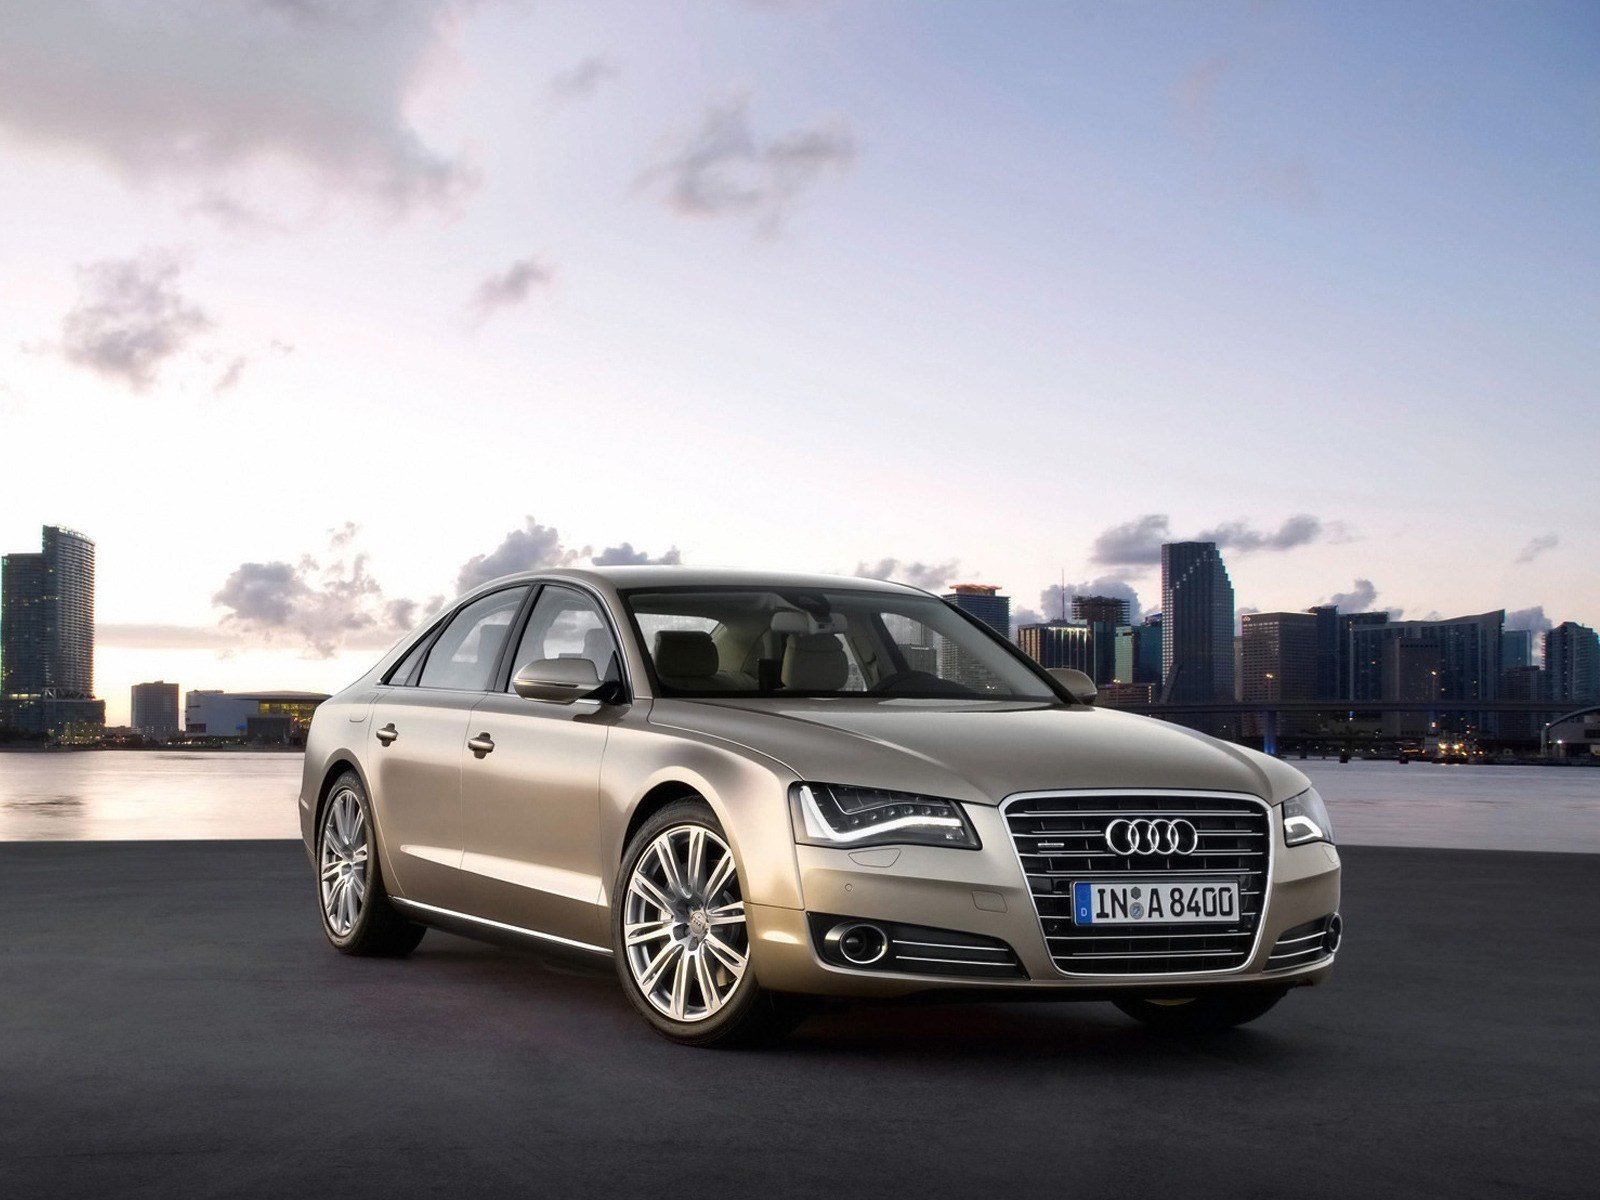 Latest Audi A8 Wallpaper Audi Cars Wallpapers In Jpg Format For Free Download